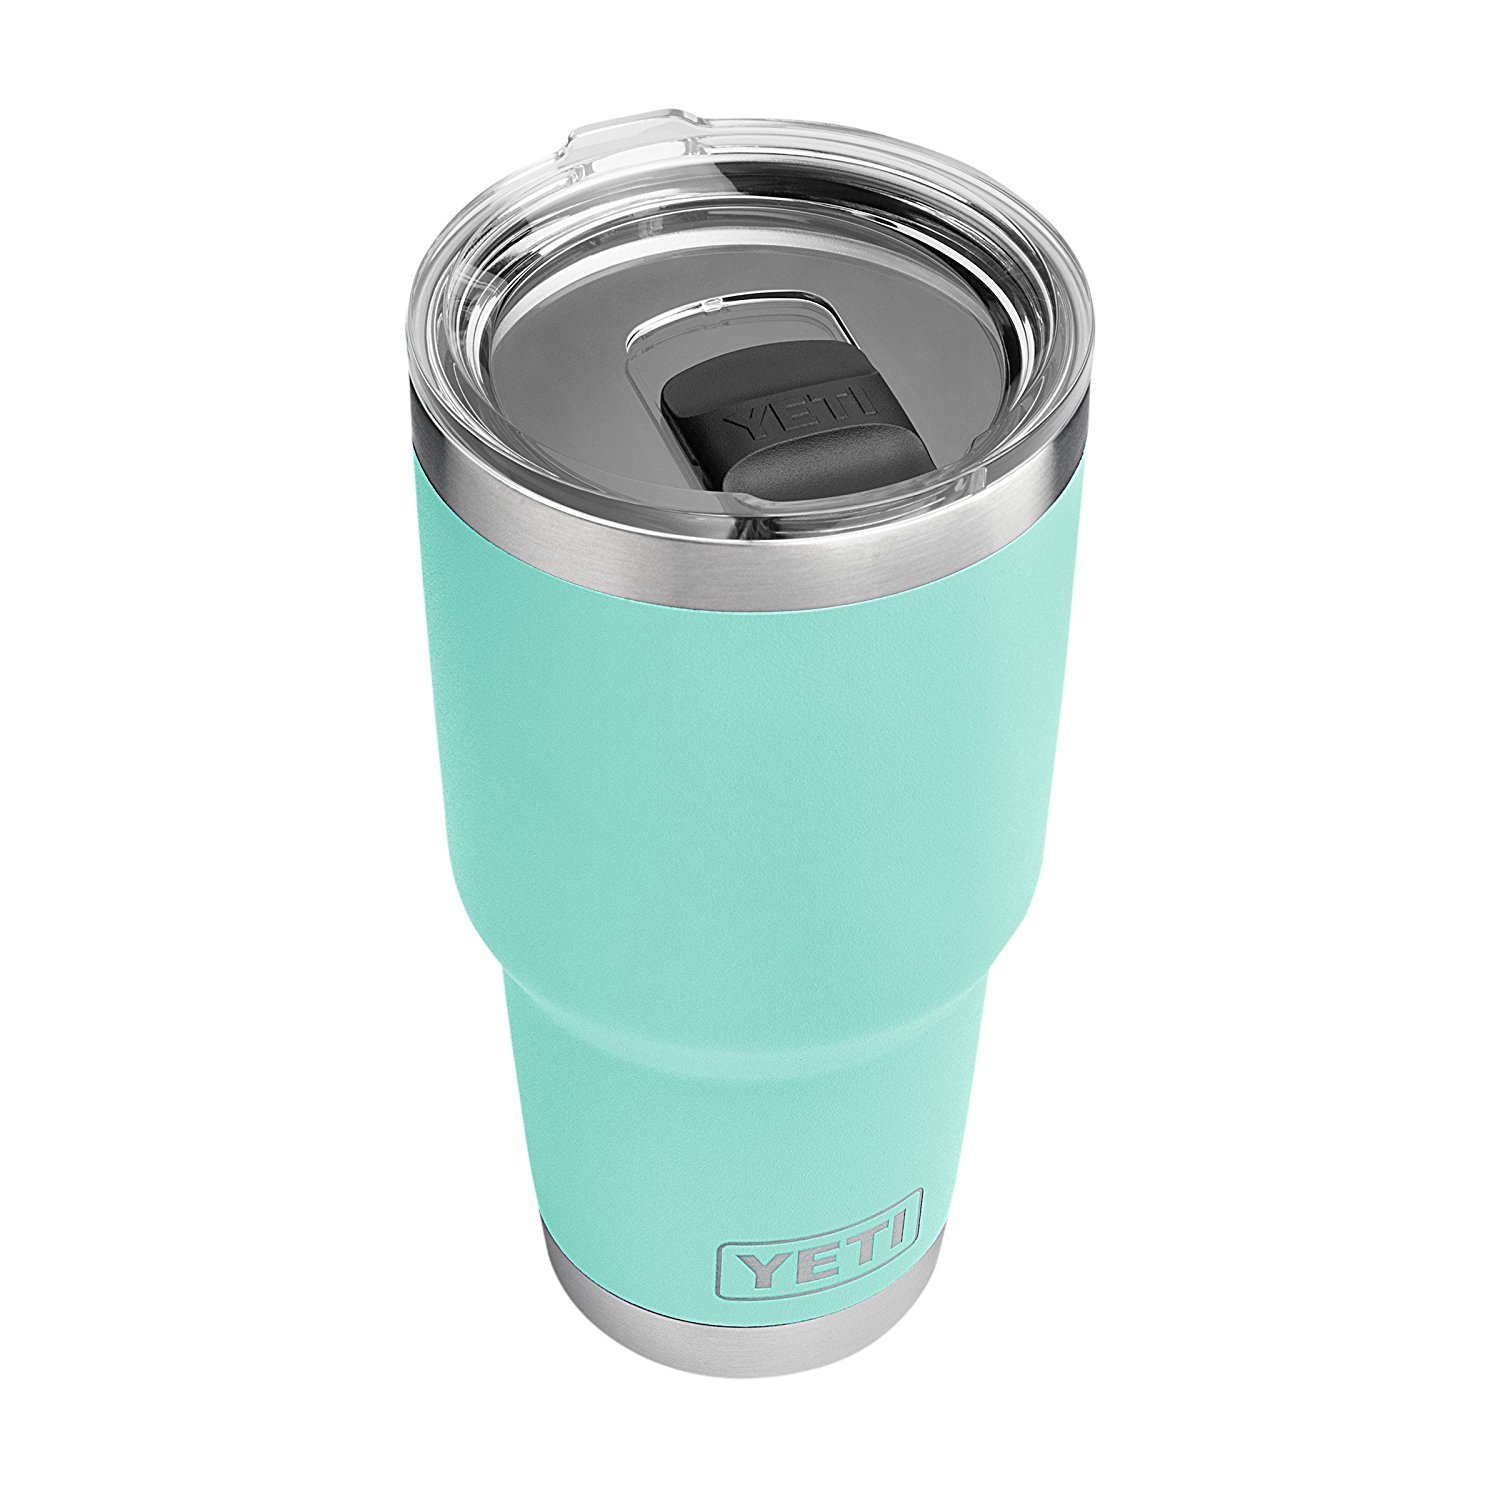 YETI Rambler 30 oz Stainless Steel Vacuum Insulated Tumbler w/ MagSlider Lid, Seafoam